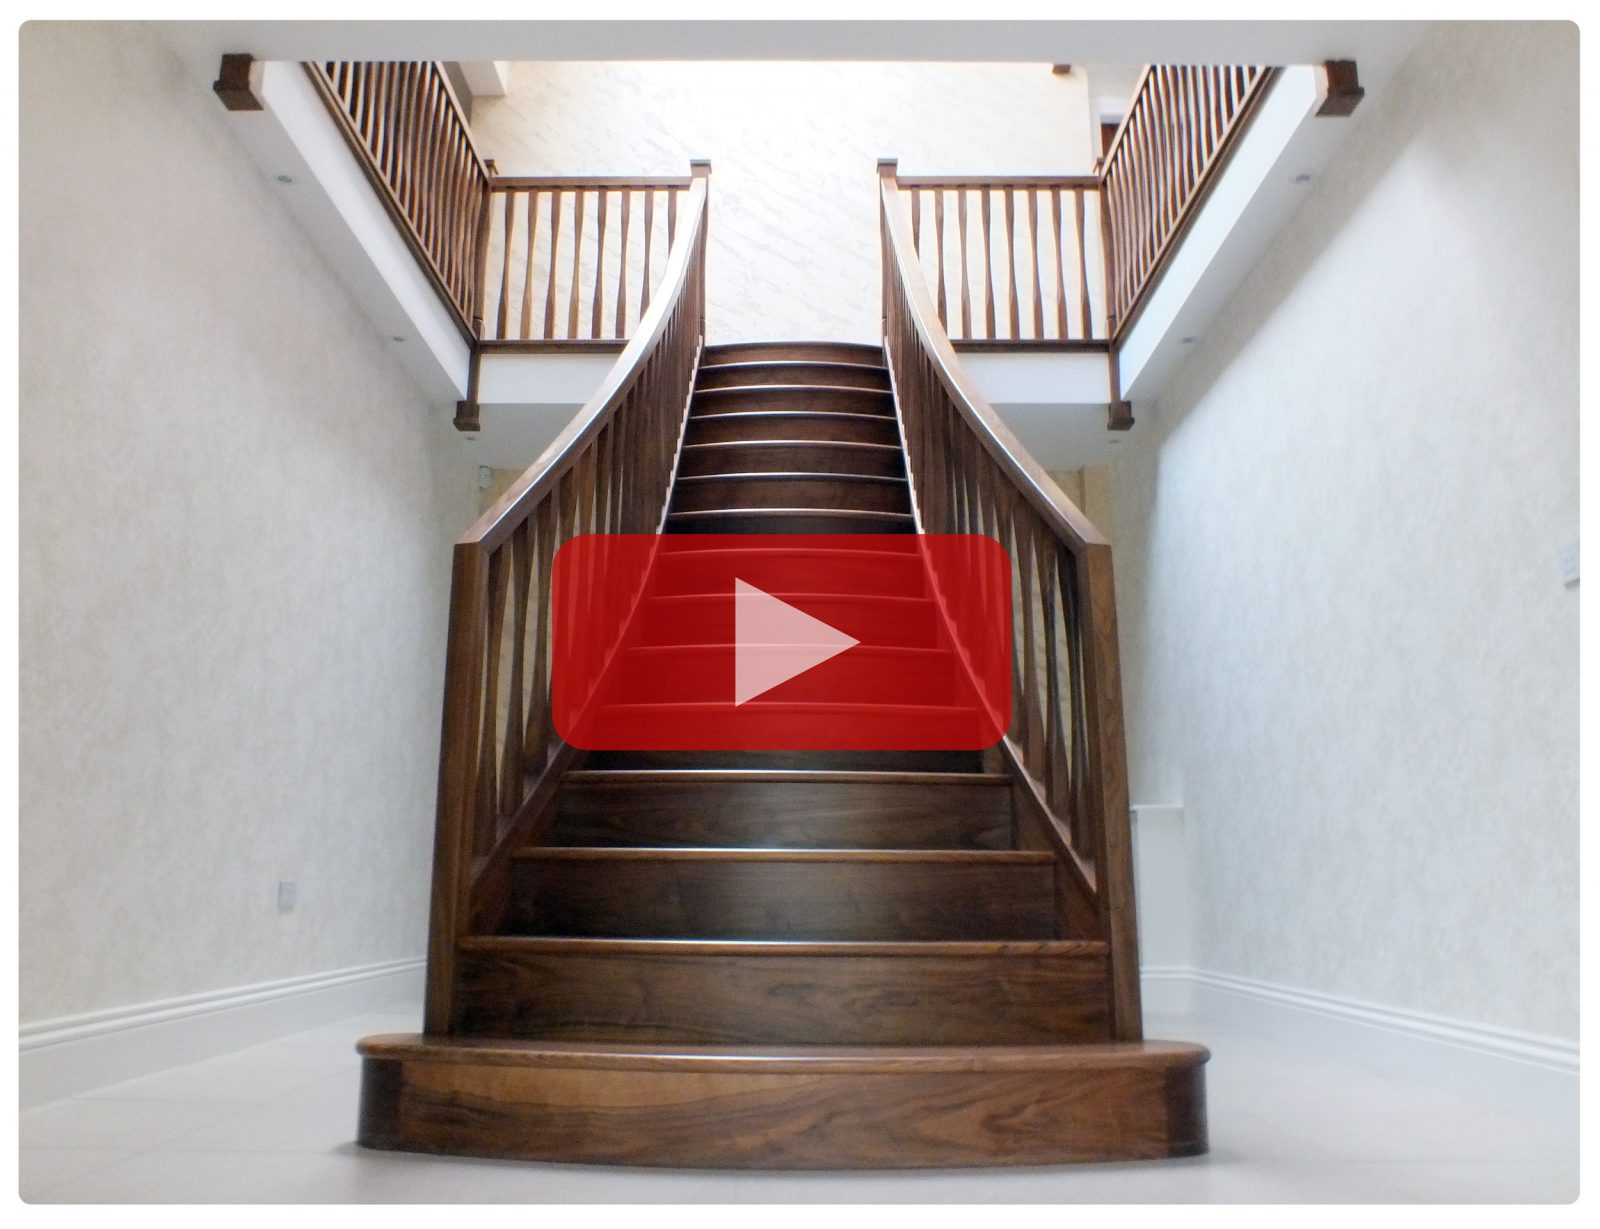 Ordinaire Staircases Gallery